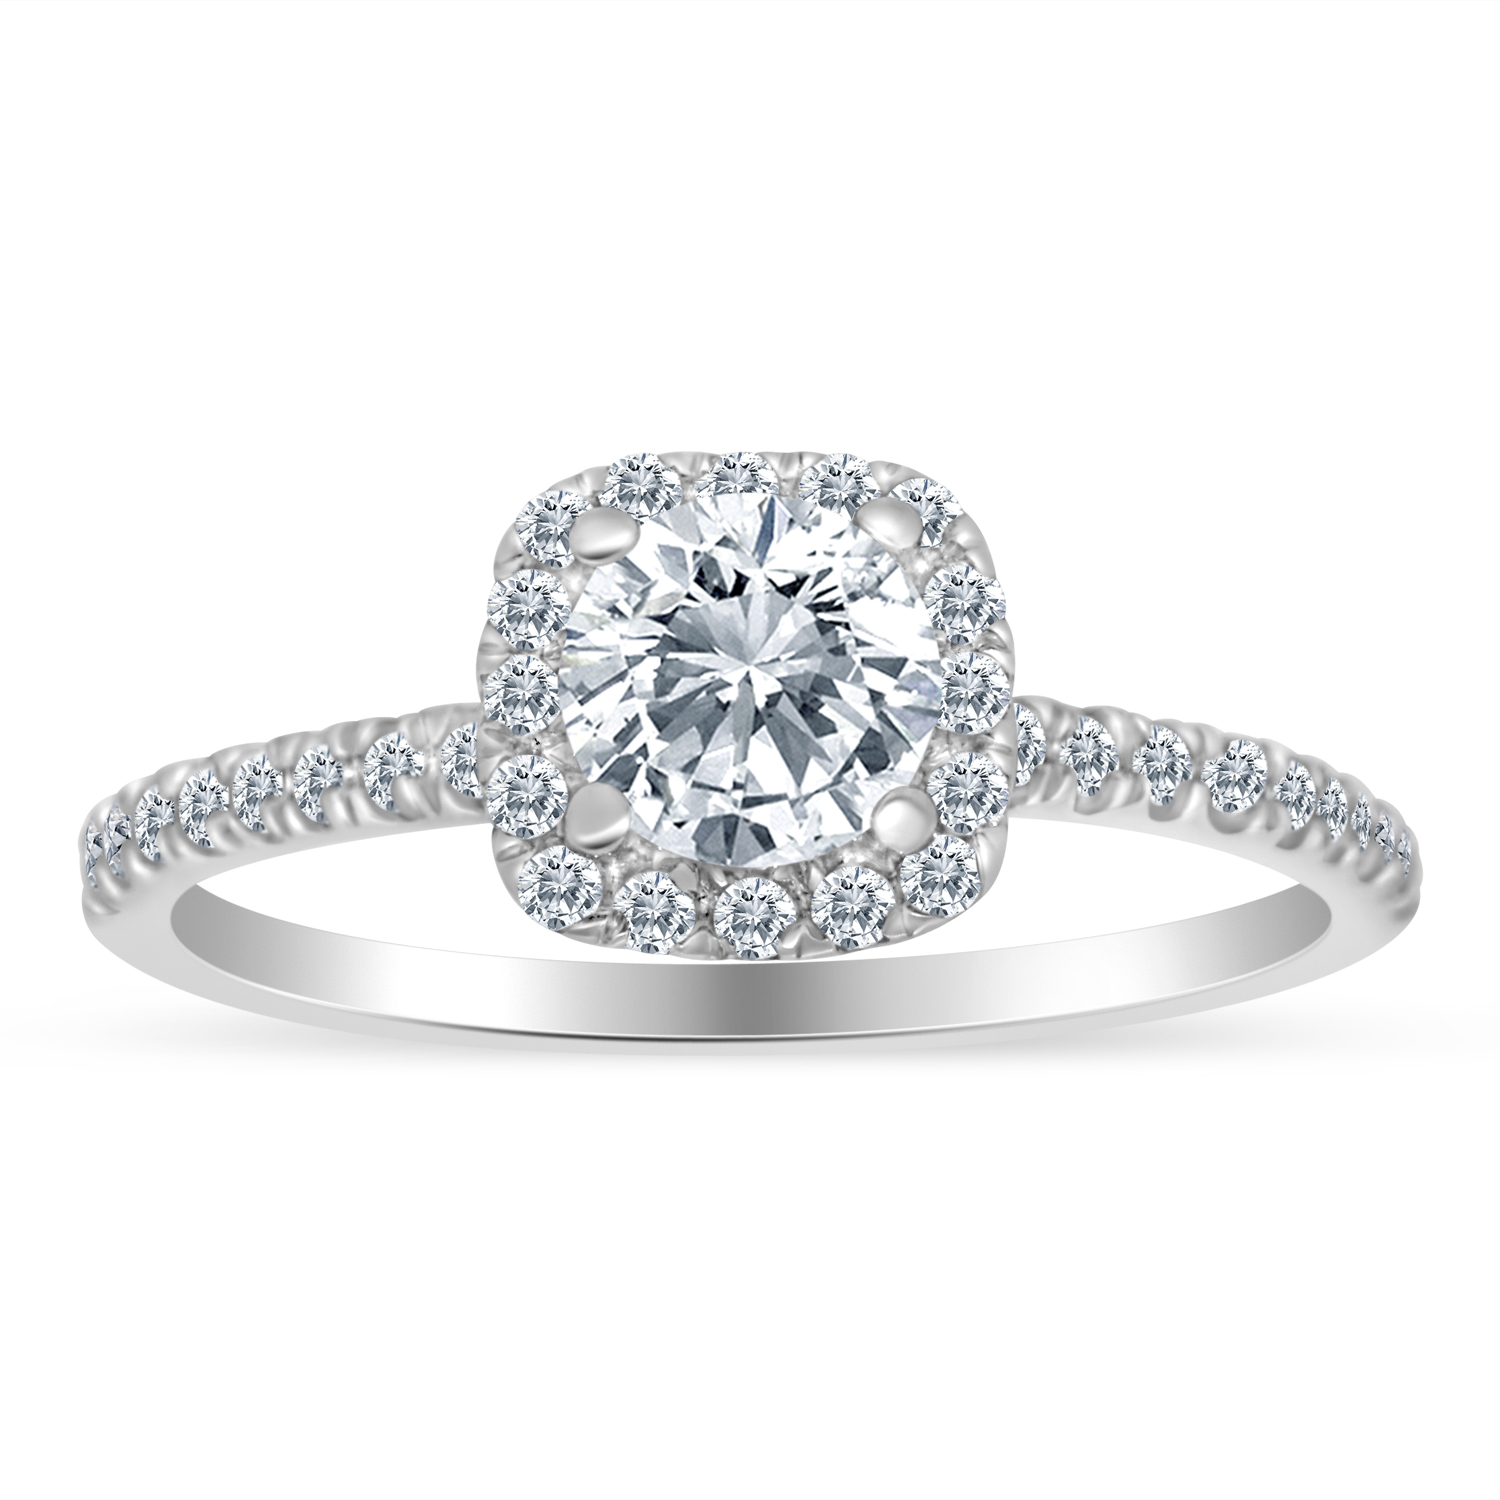 3 4ctw Diamond Halo Engagement Ring in 10k White Gold by Sk Jewel,Inc